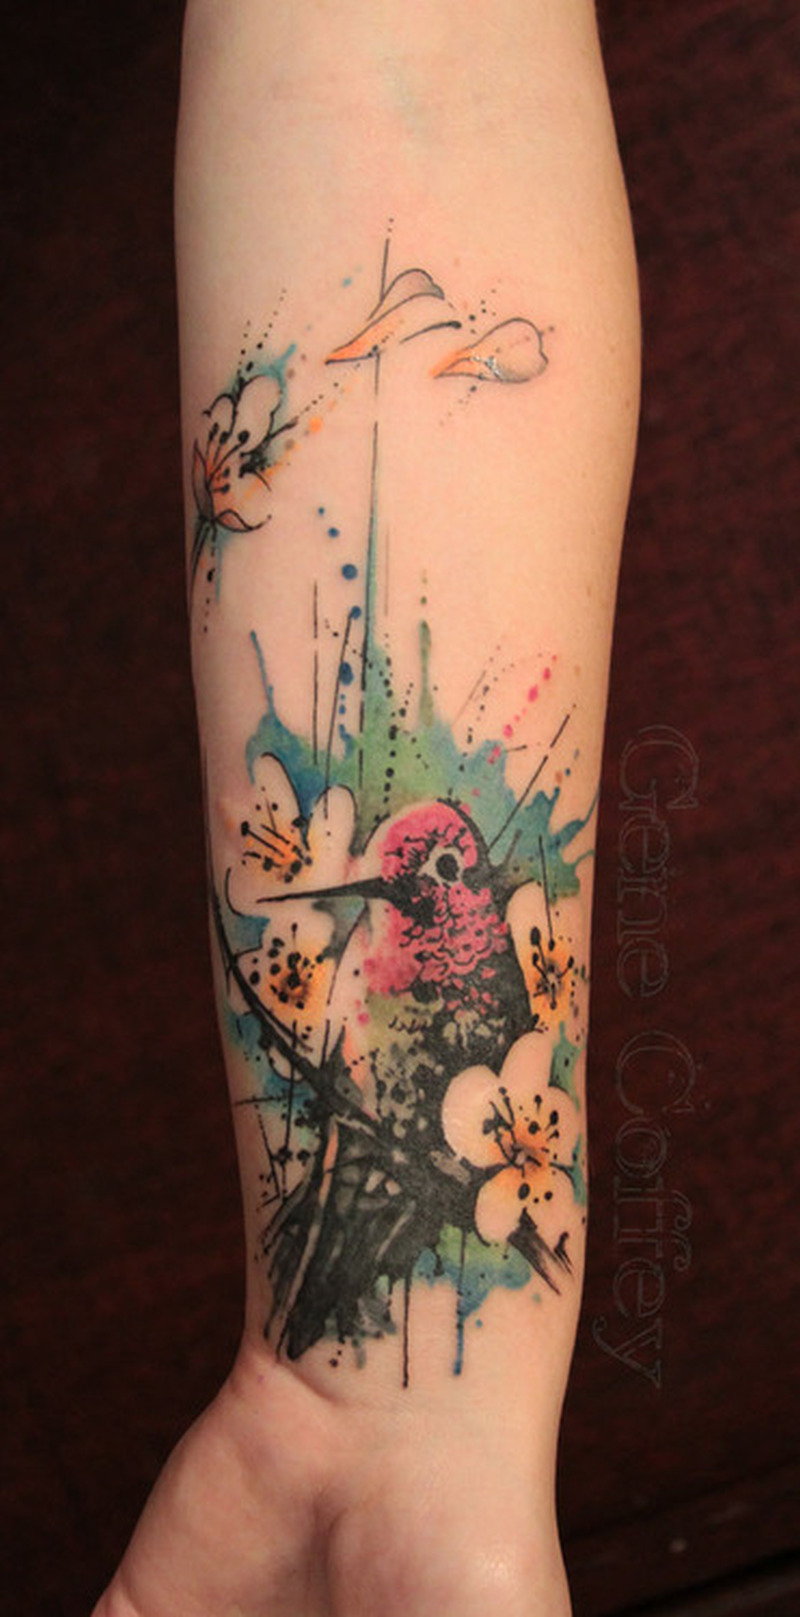 Watercolor hummingbird tattoo on wrist - Tattoos Book - 65.000 ...